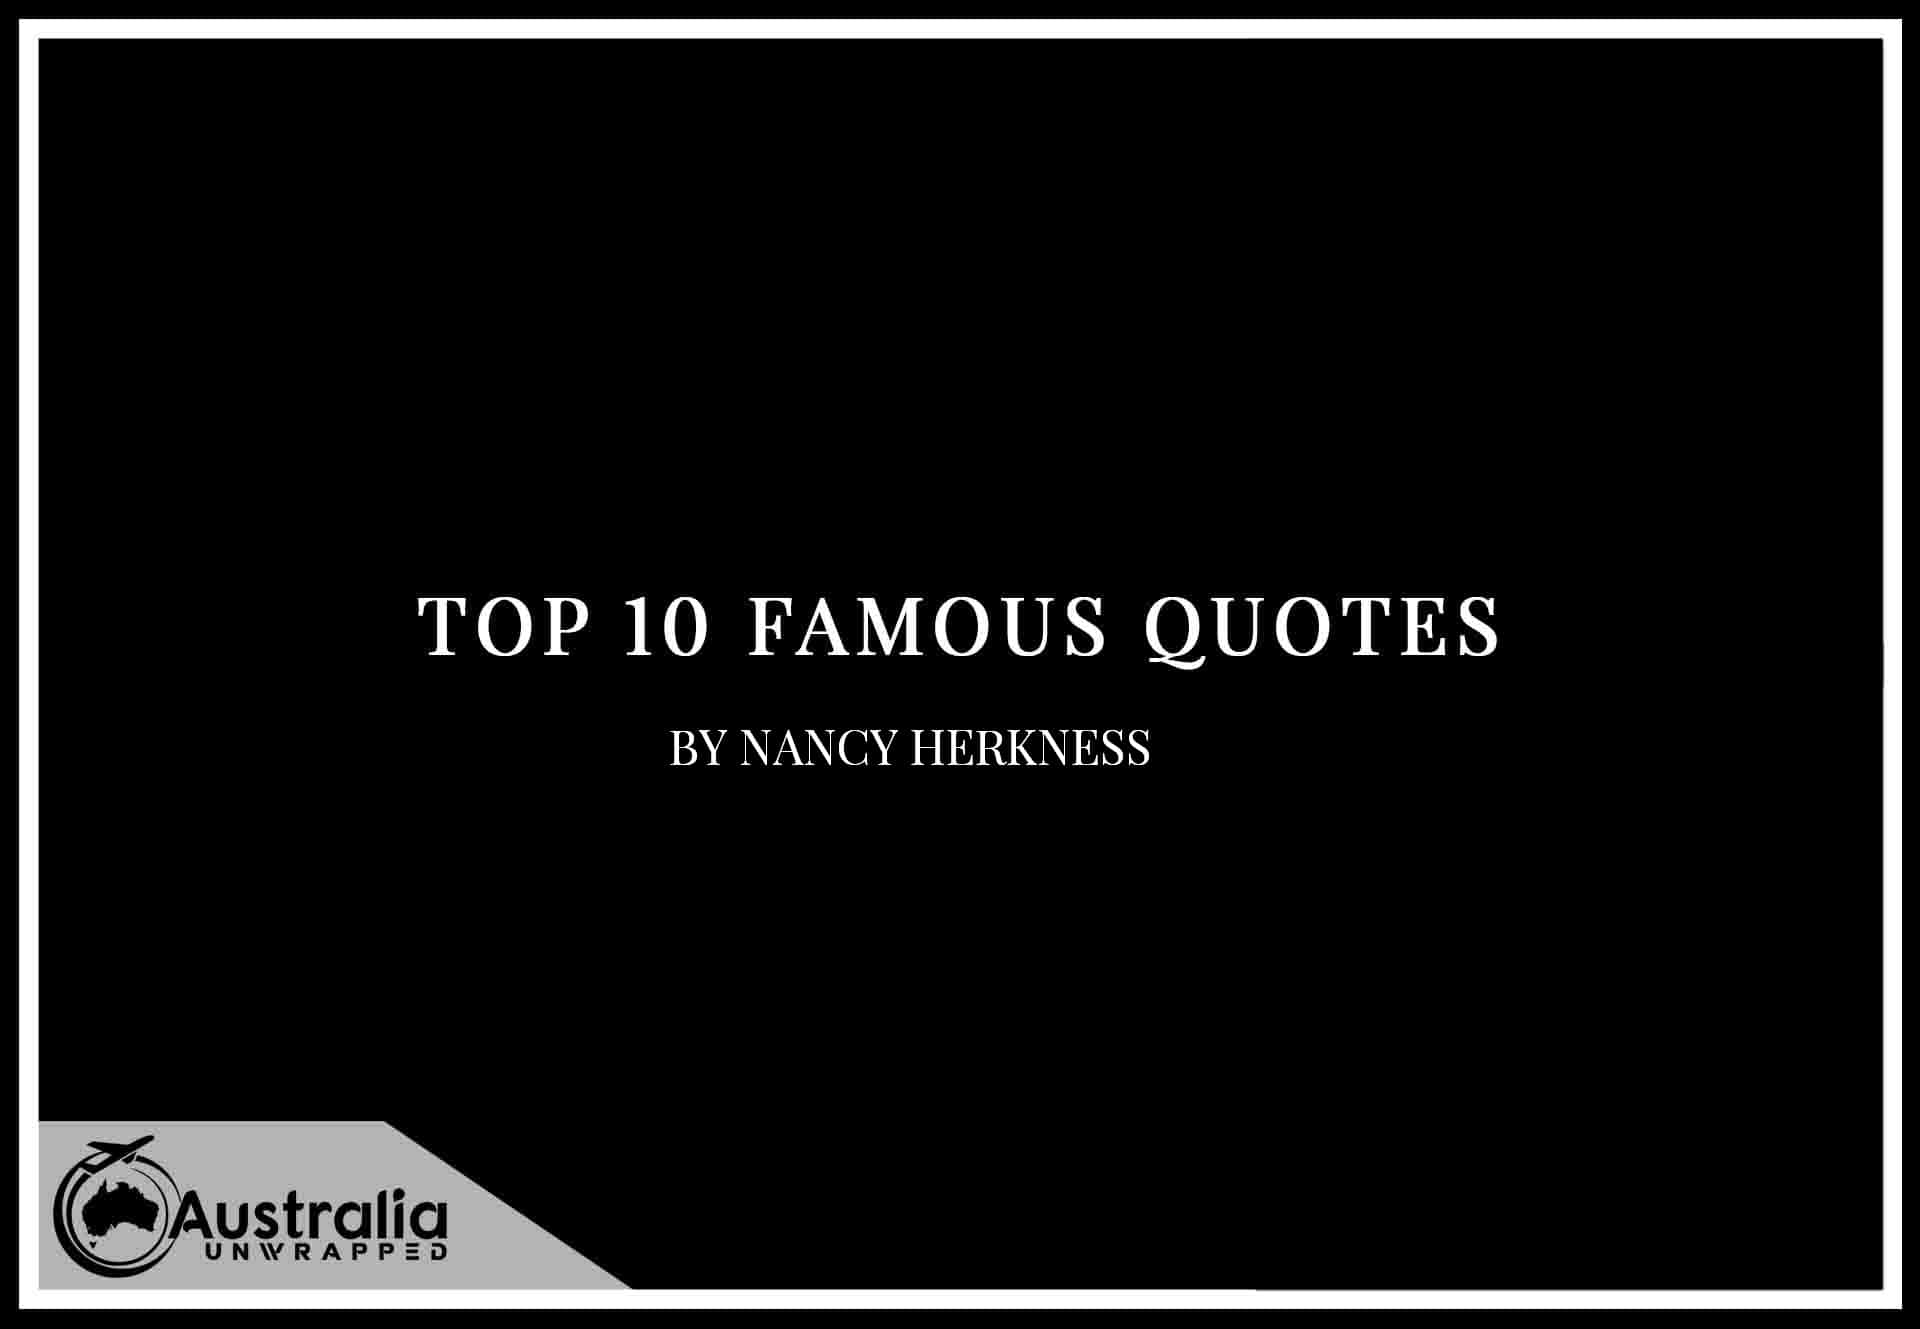 Top 10 Famous Quotes by Author Nancy Herkness